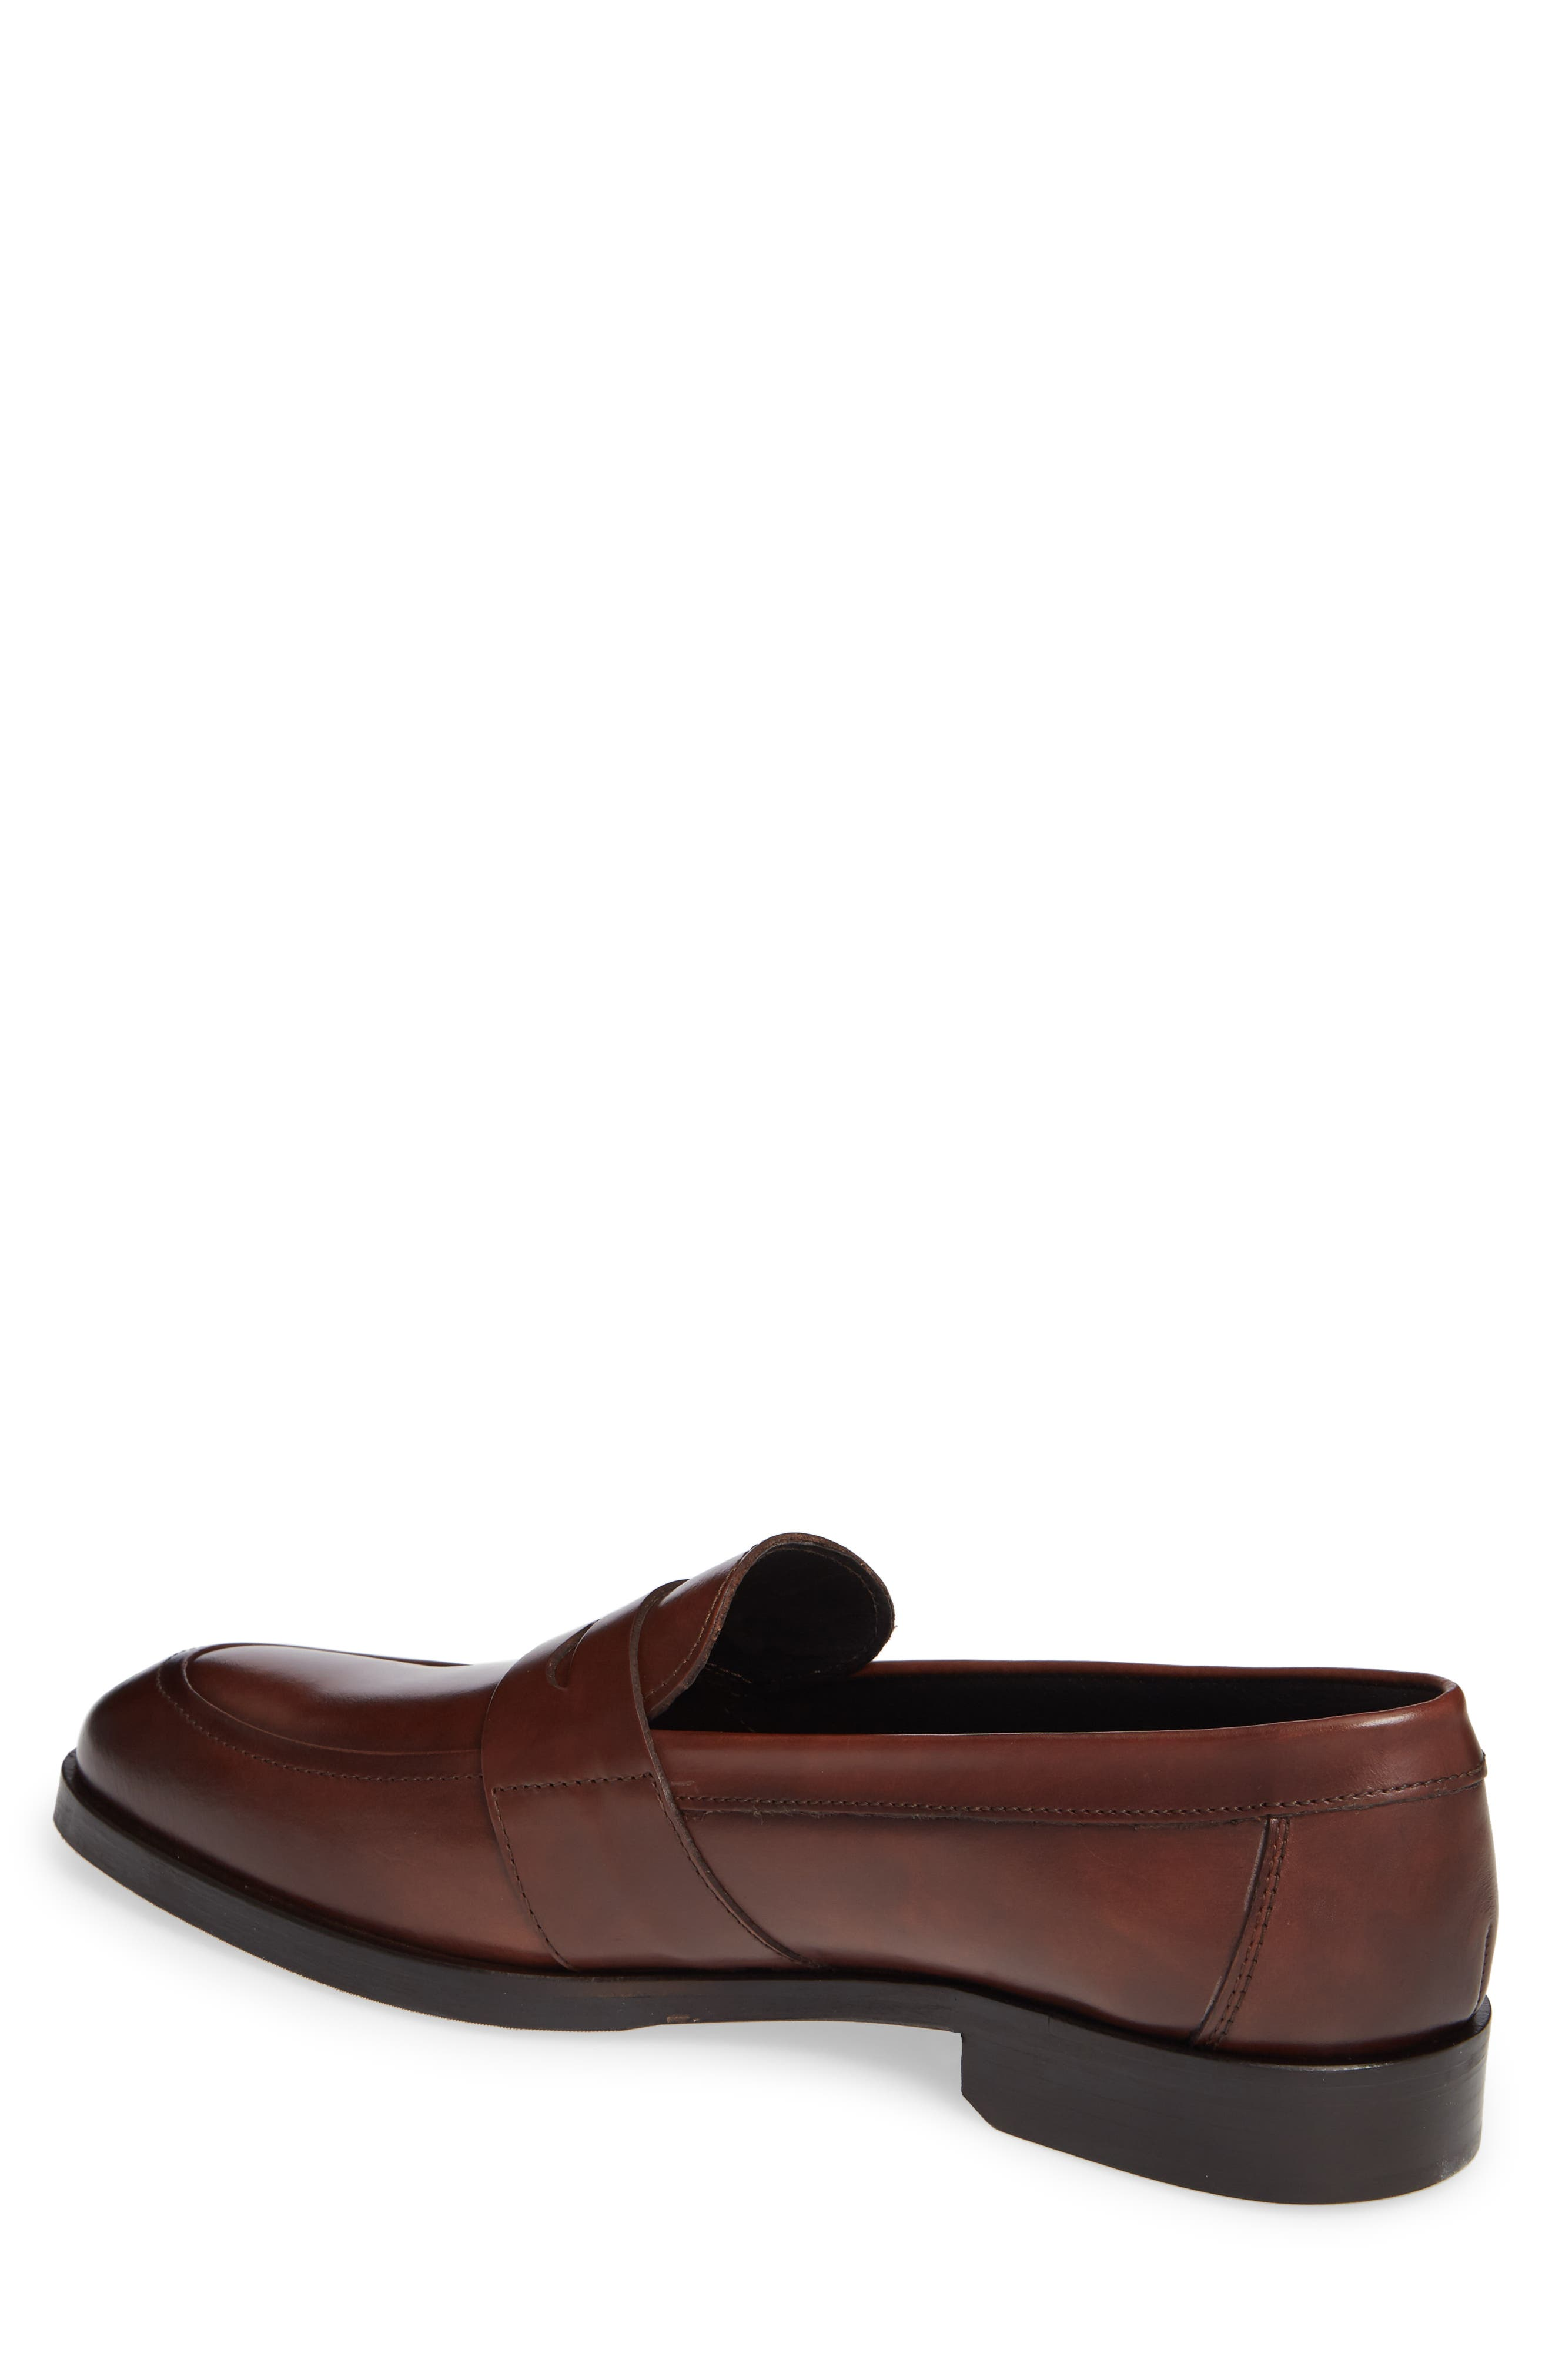 Devries Penny Loafer,                             Alternate thumbnail 2, color,                             VITELLO BRUCIATO LEATHER